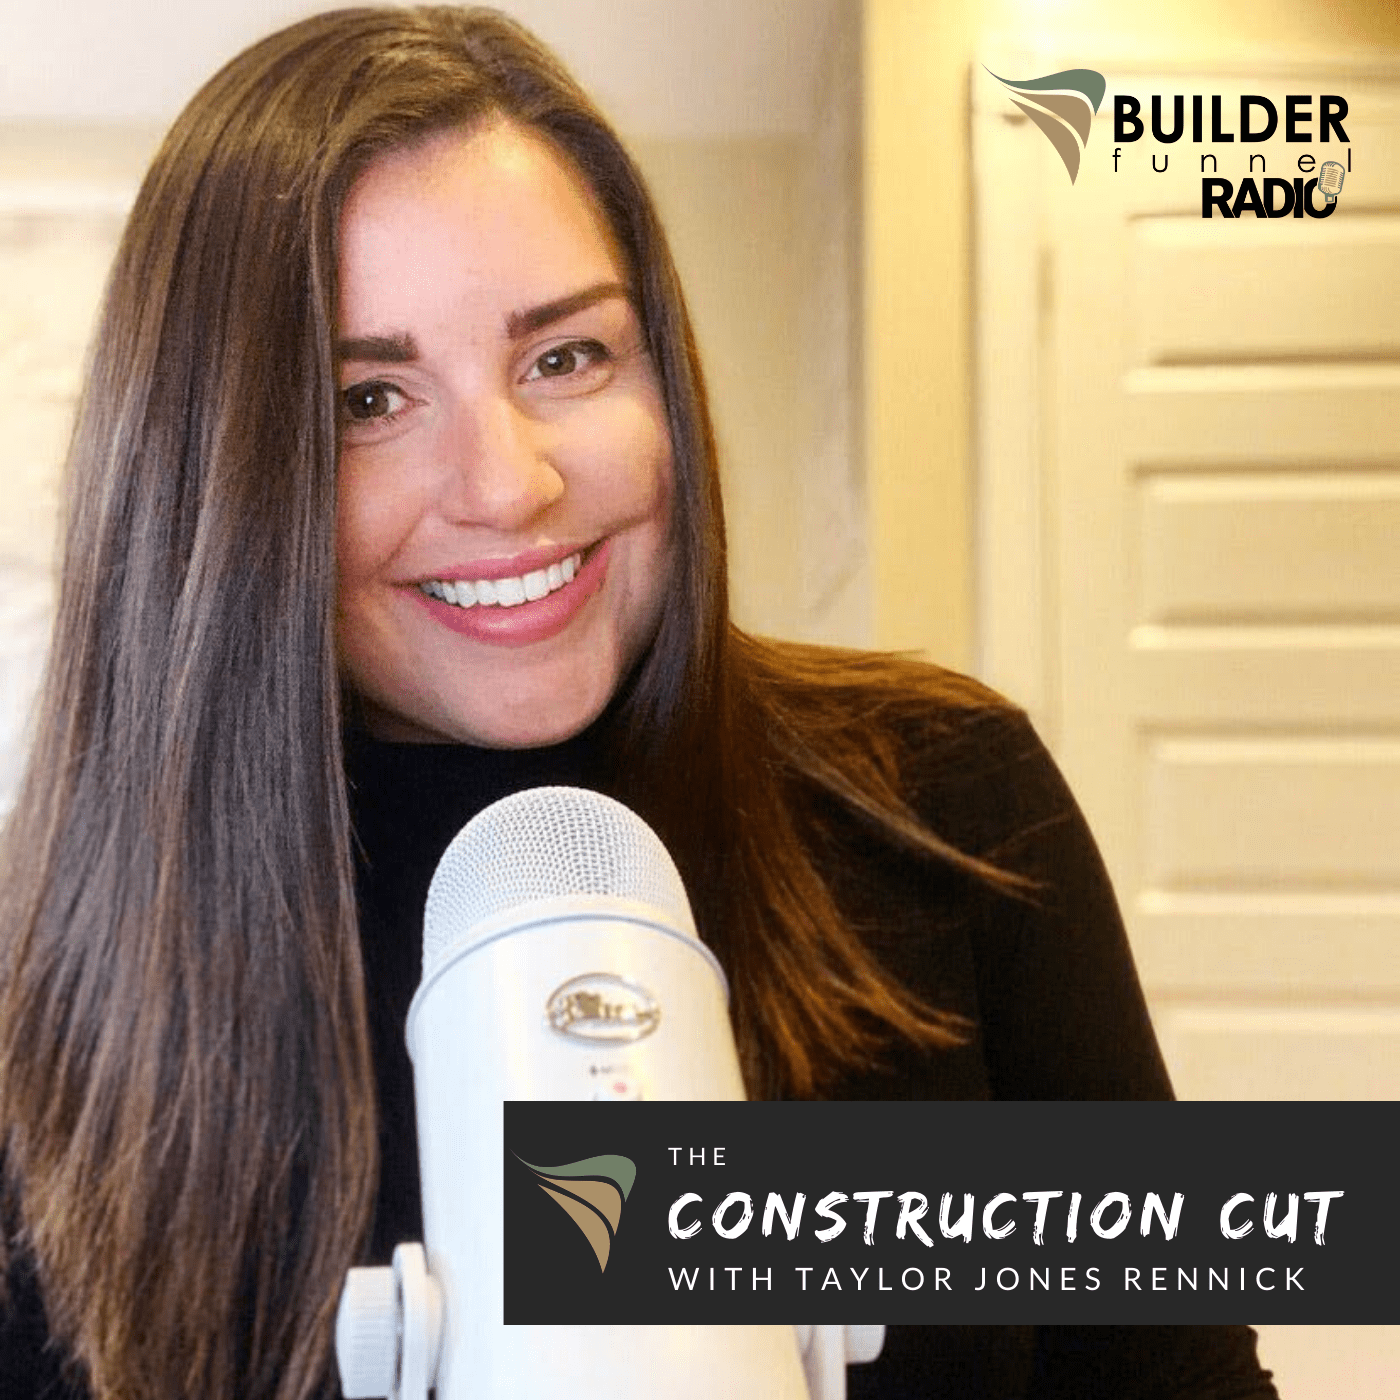 The Construction Cut with Taylor Rennick on Builder Funnel Radio